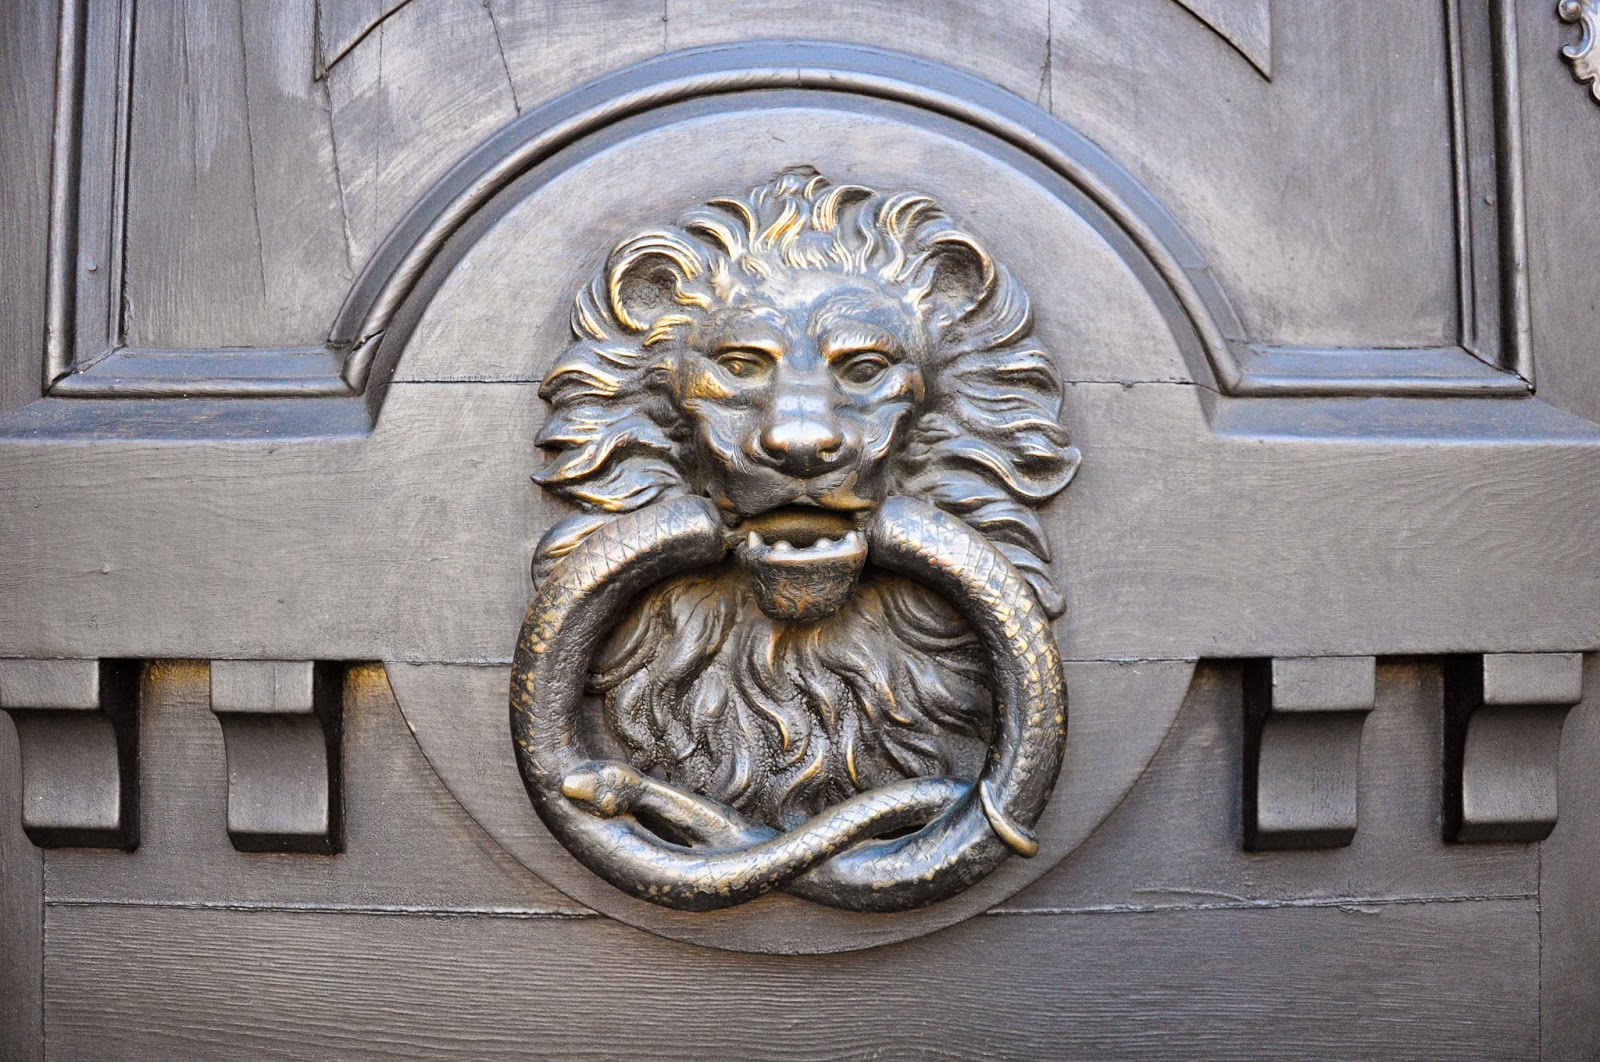 A lion's head holding a snake in its jaws door knocker as seen in Padova, Italy